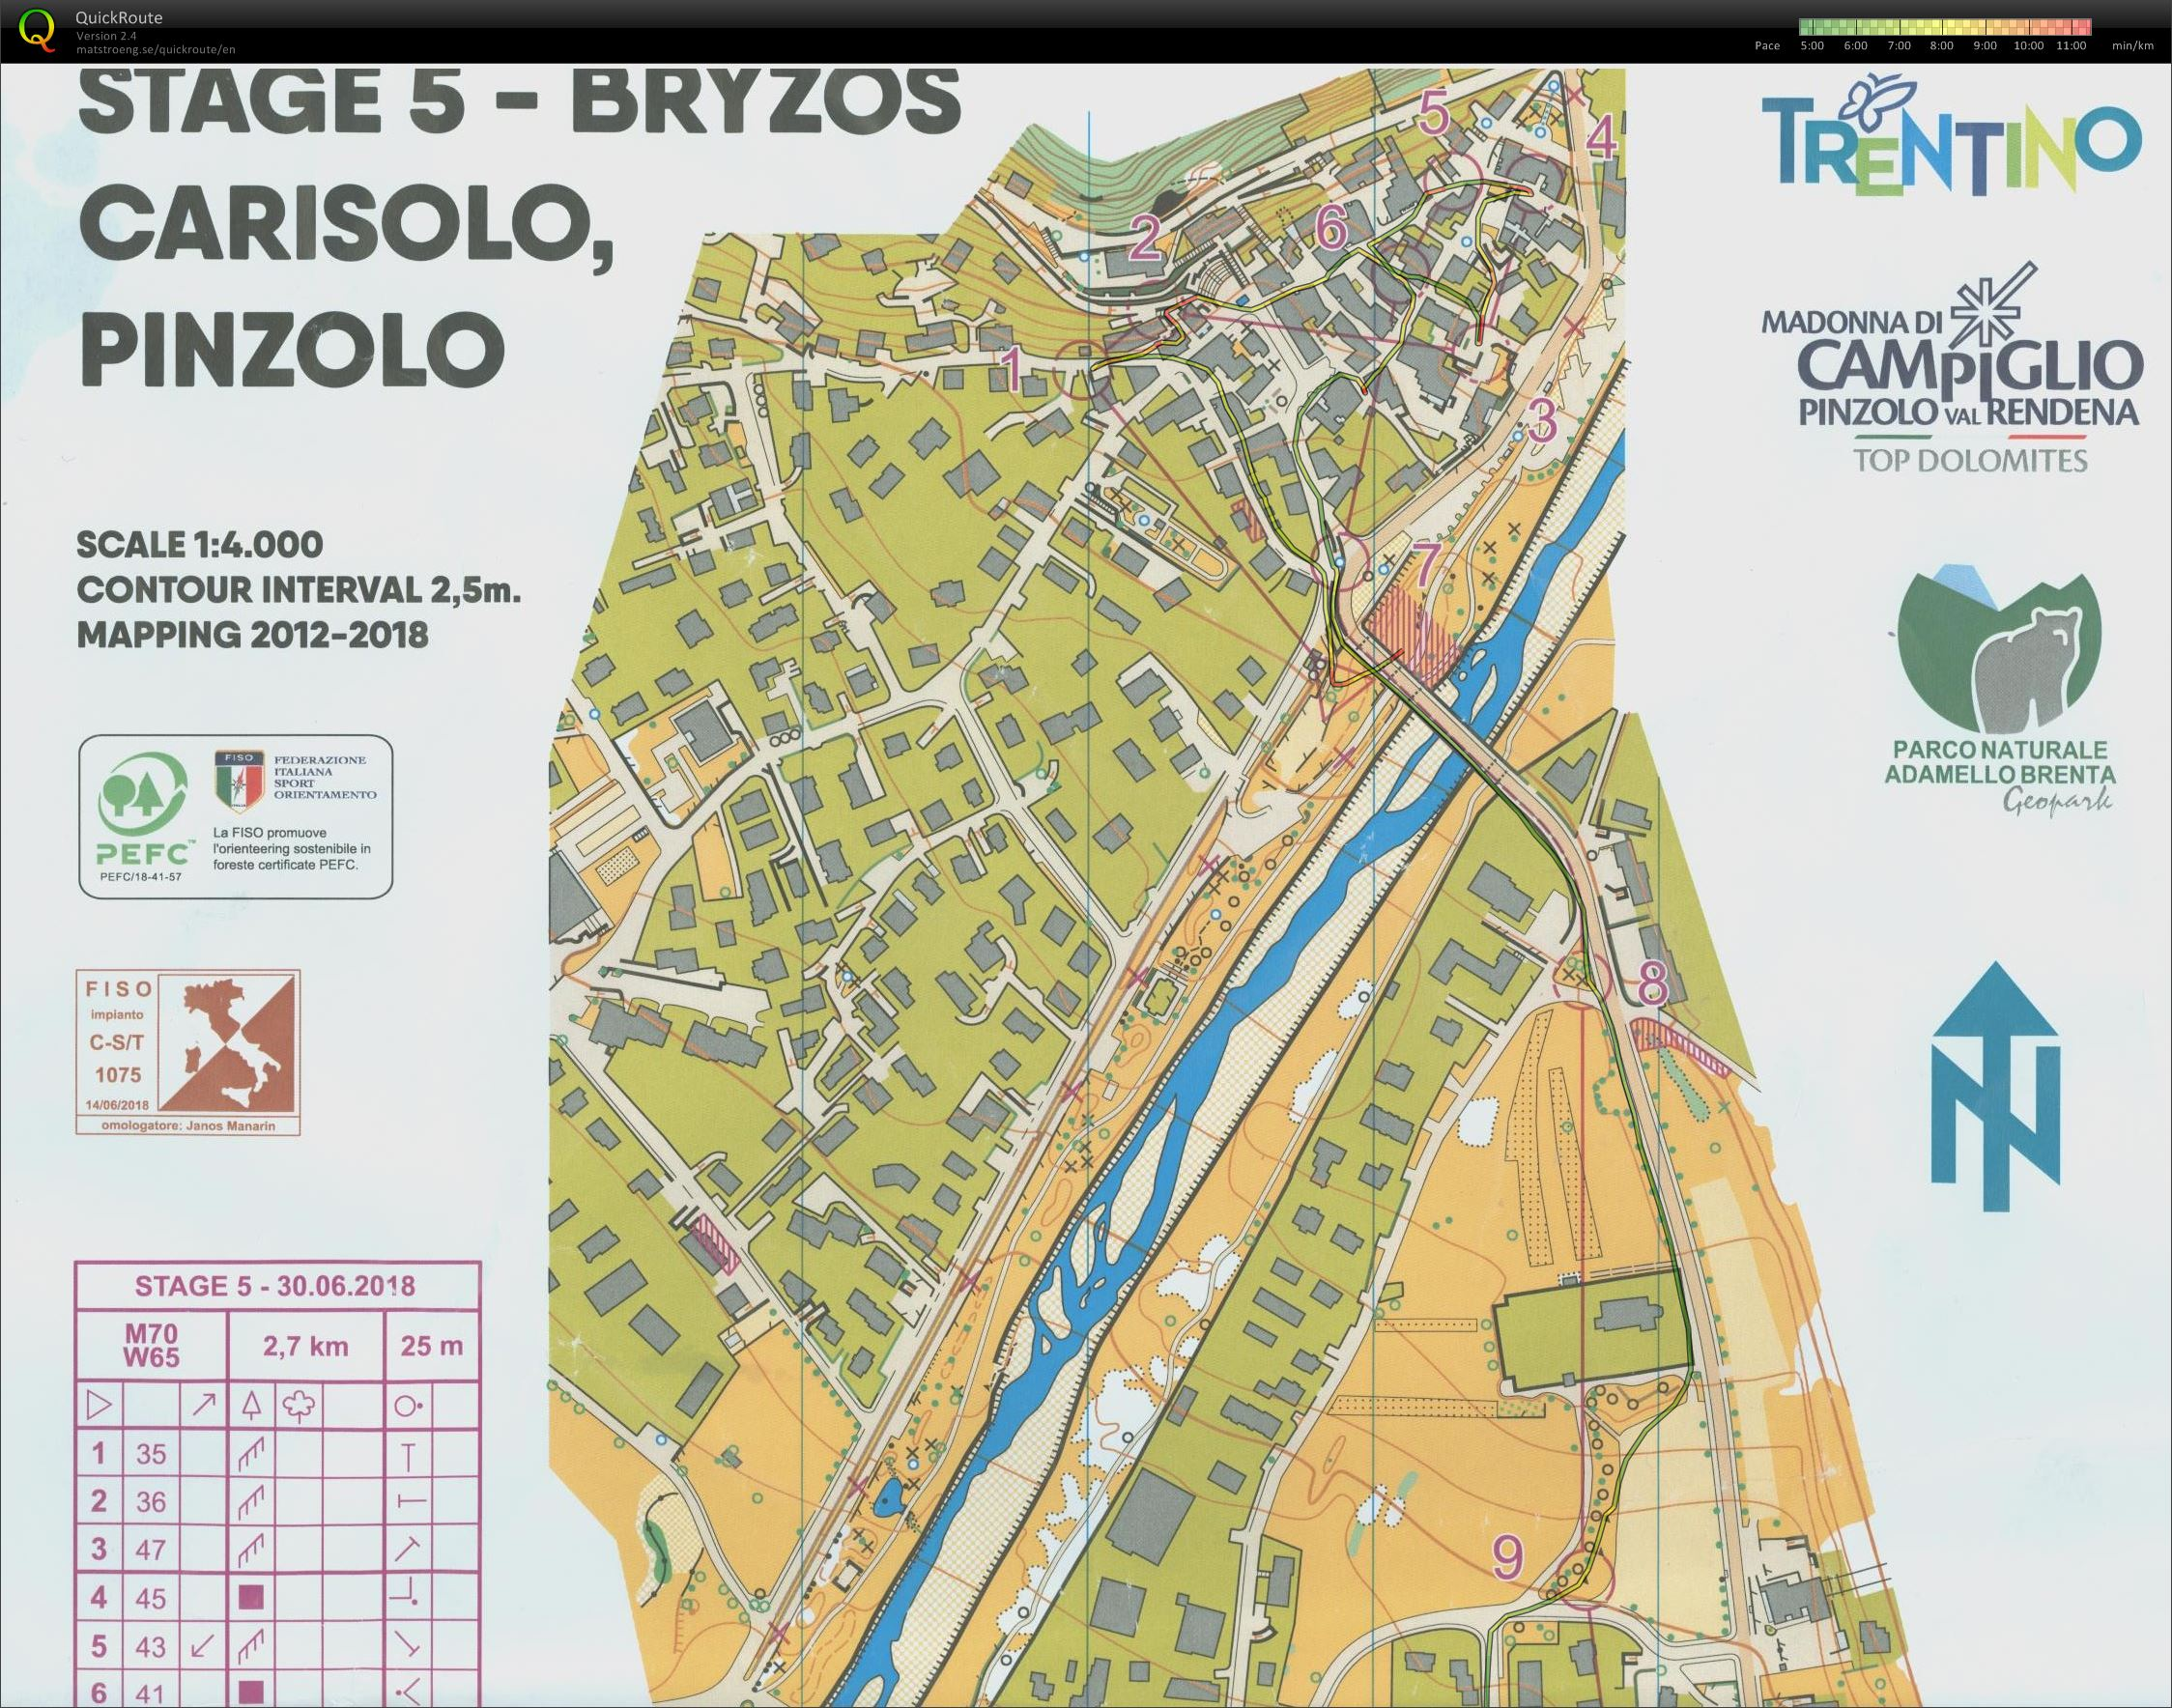 Italian 5 Day Stage 5 pt 1 (01/07/2018)